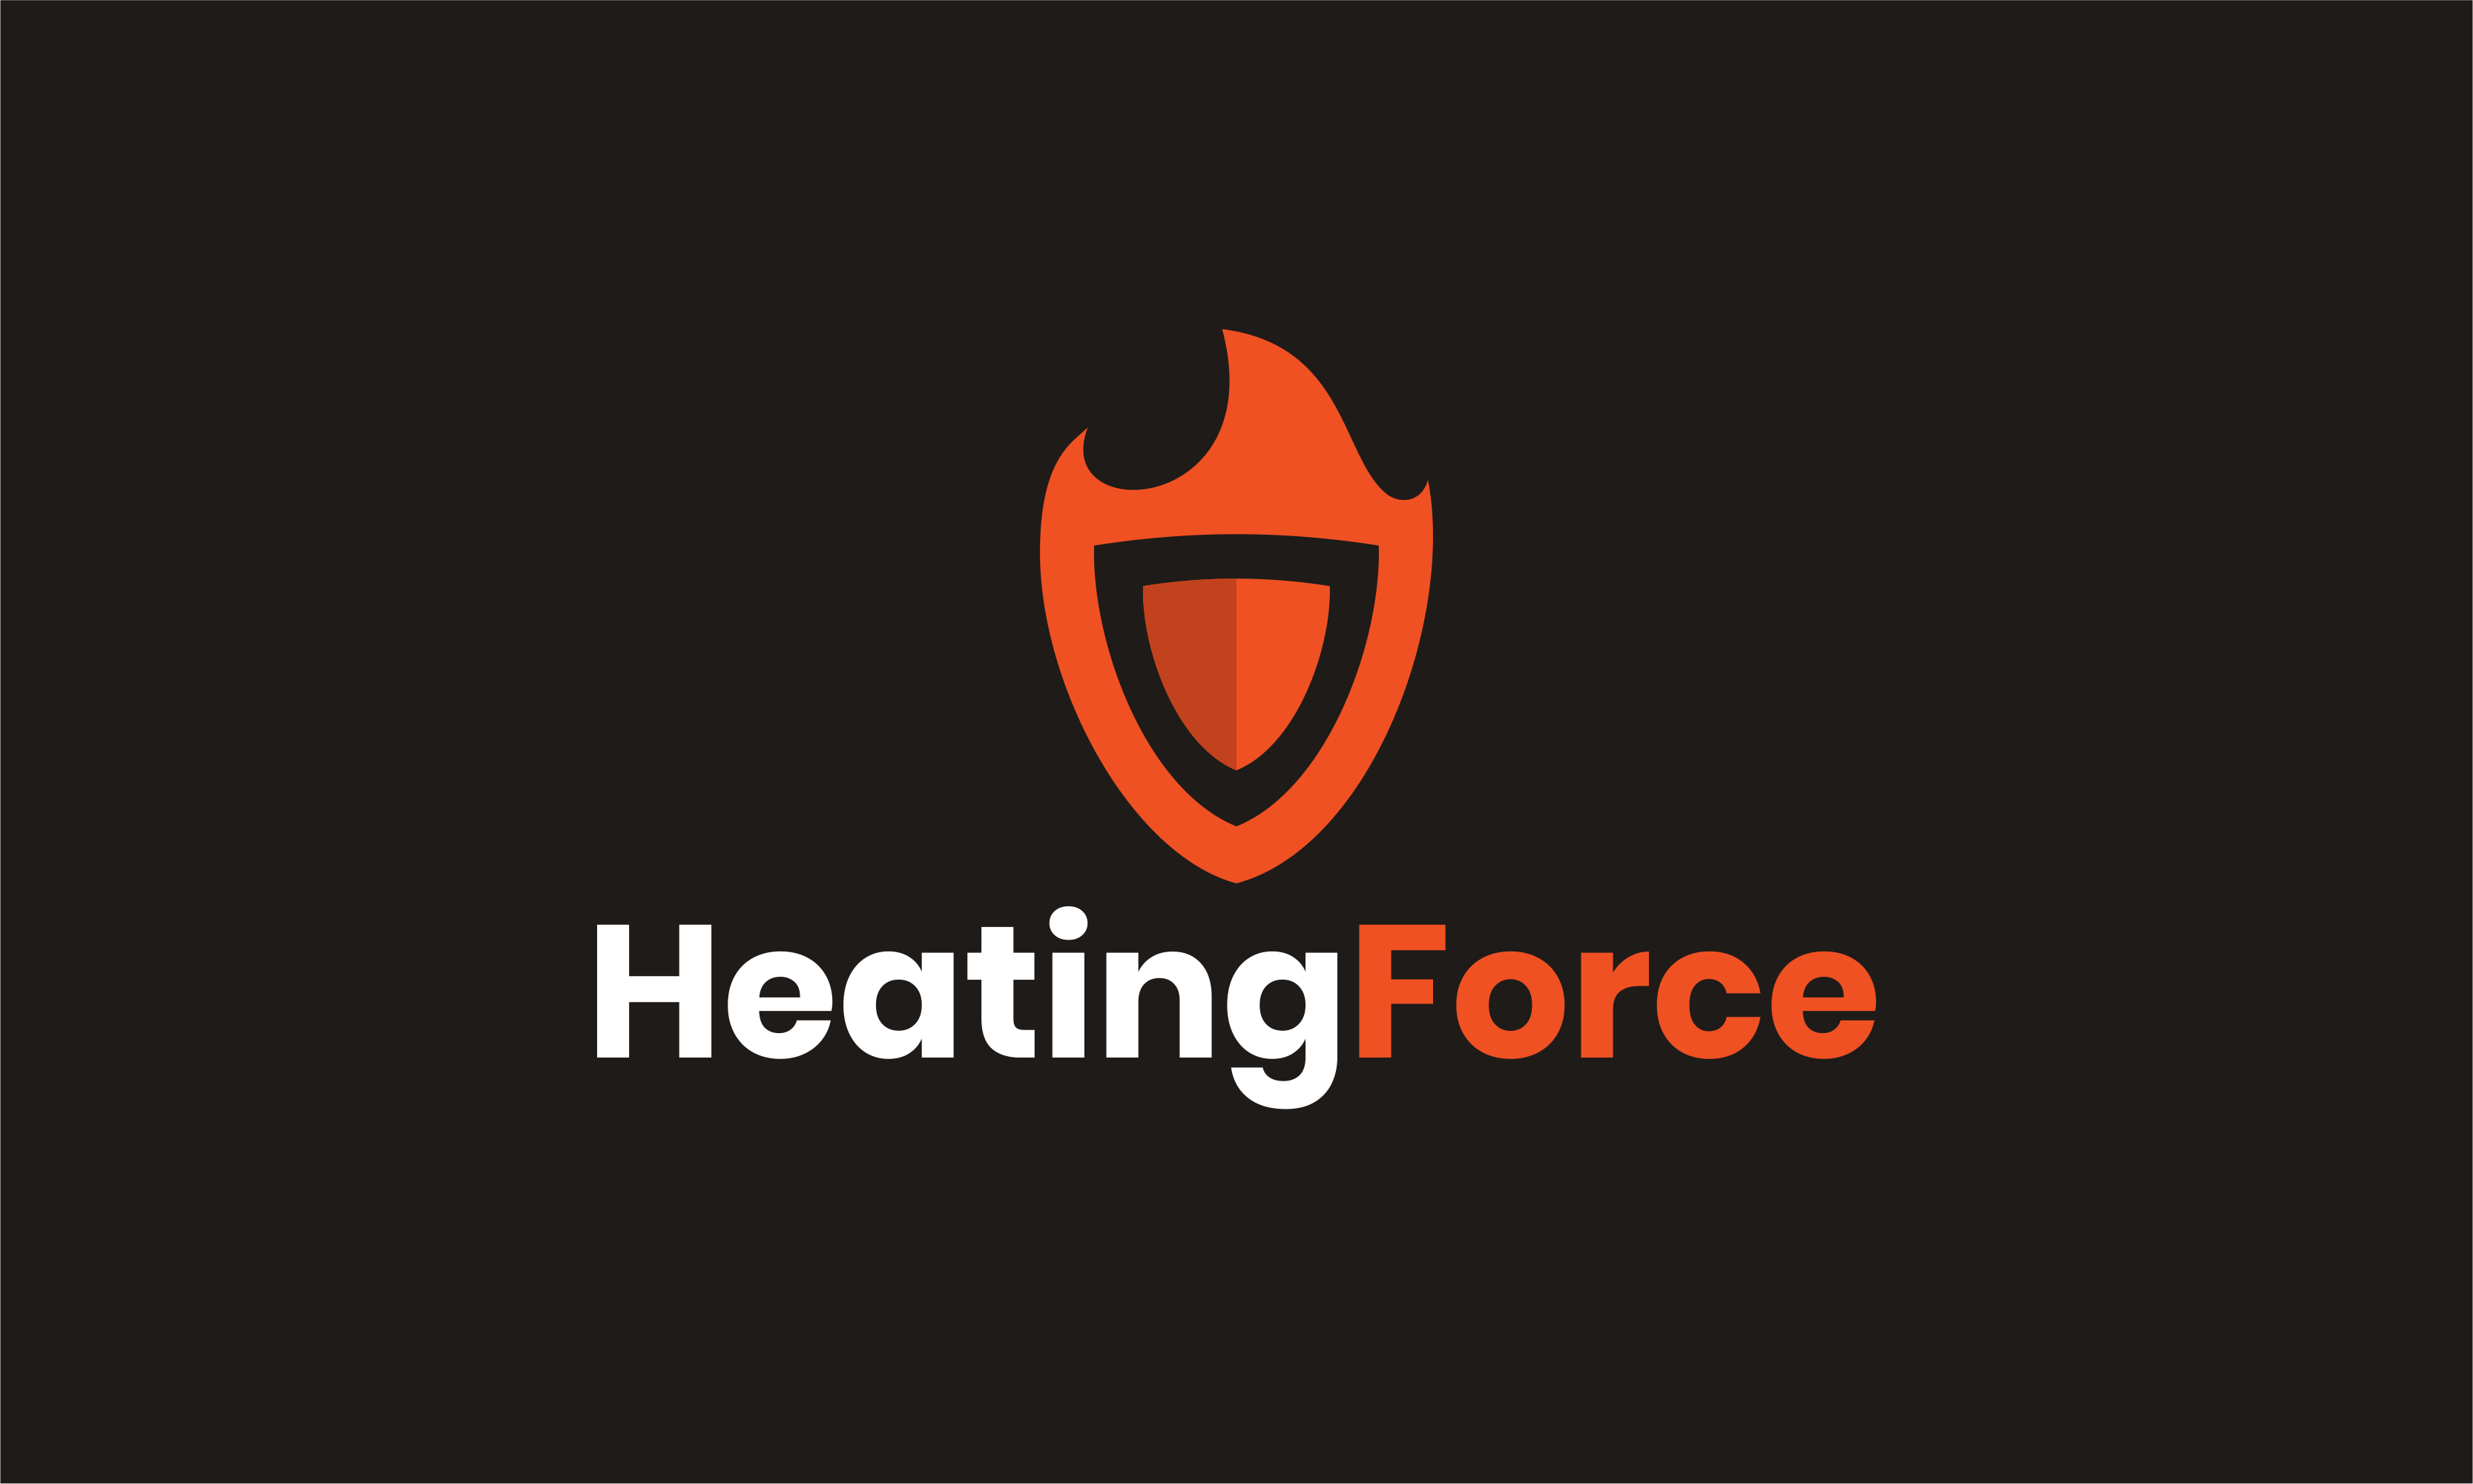 Heatingforce